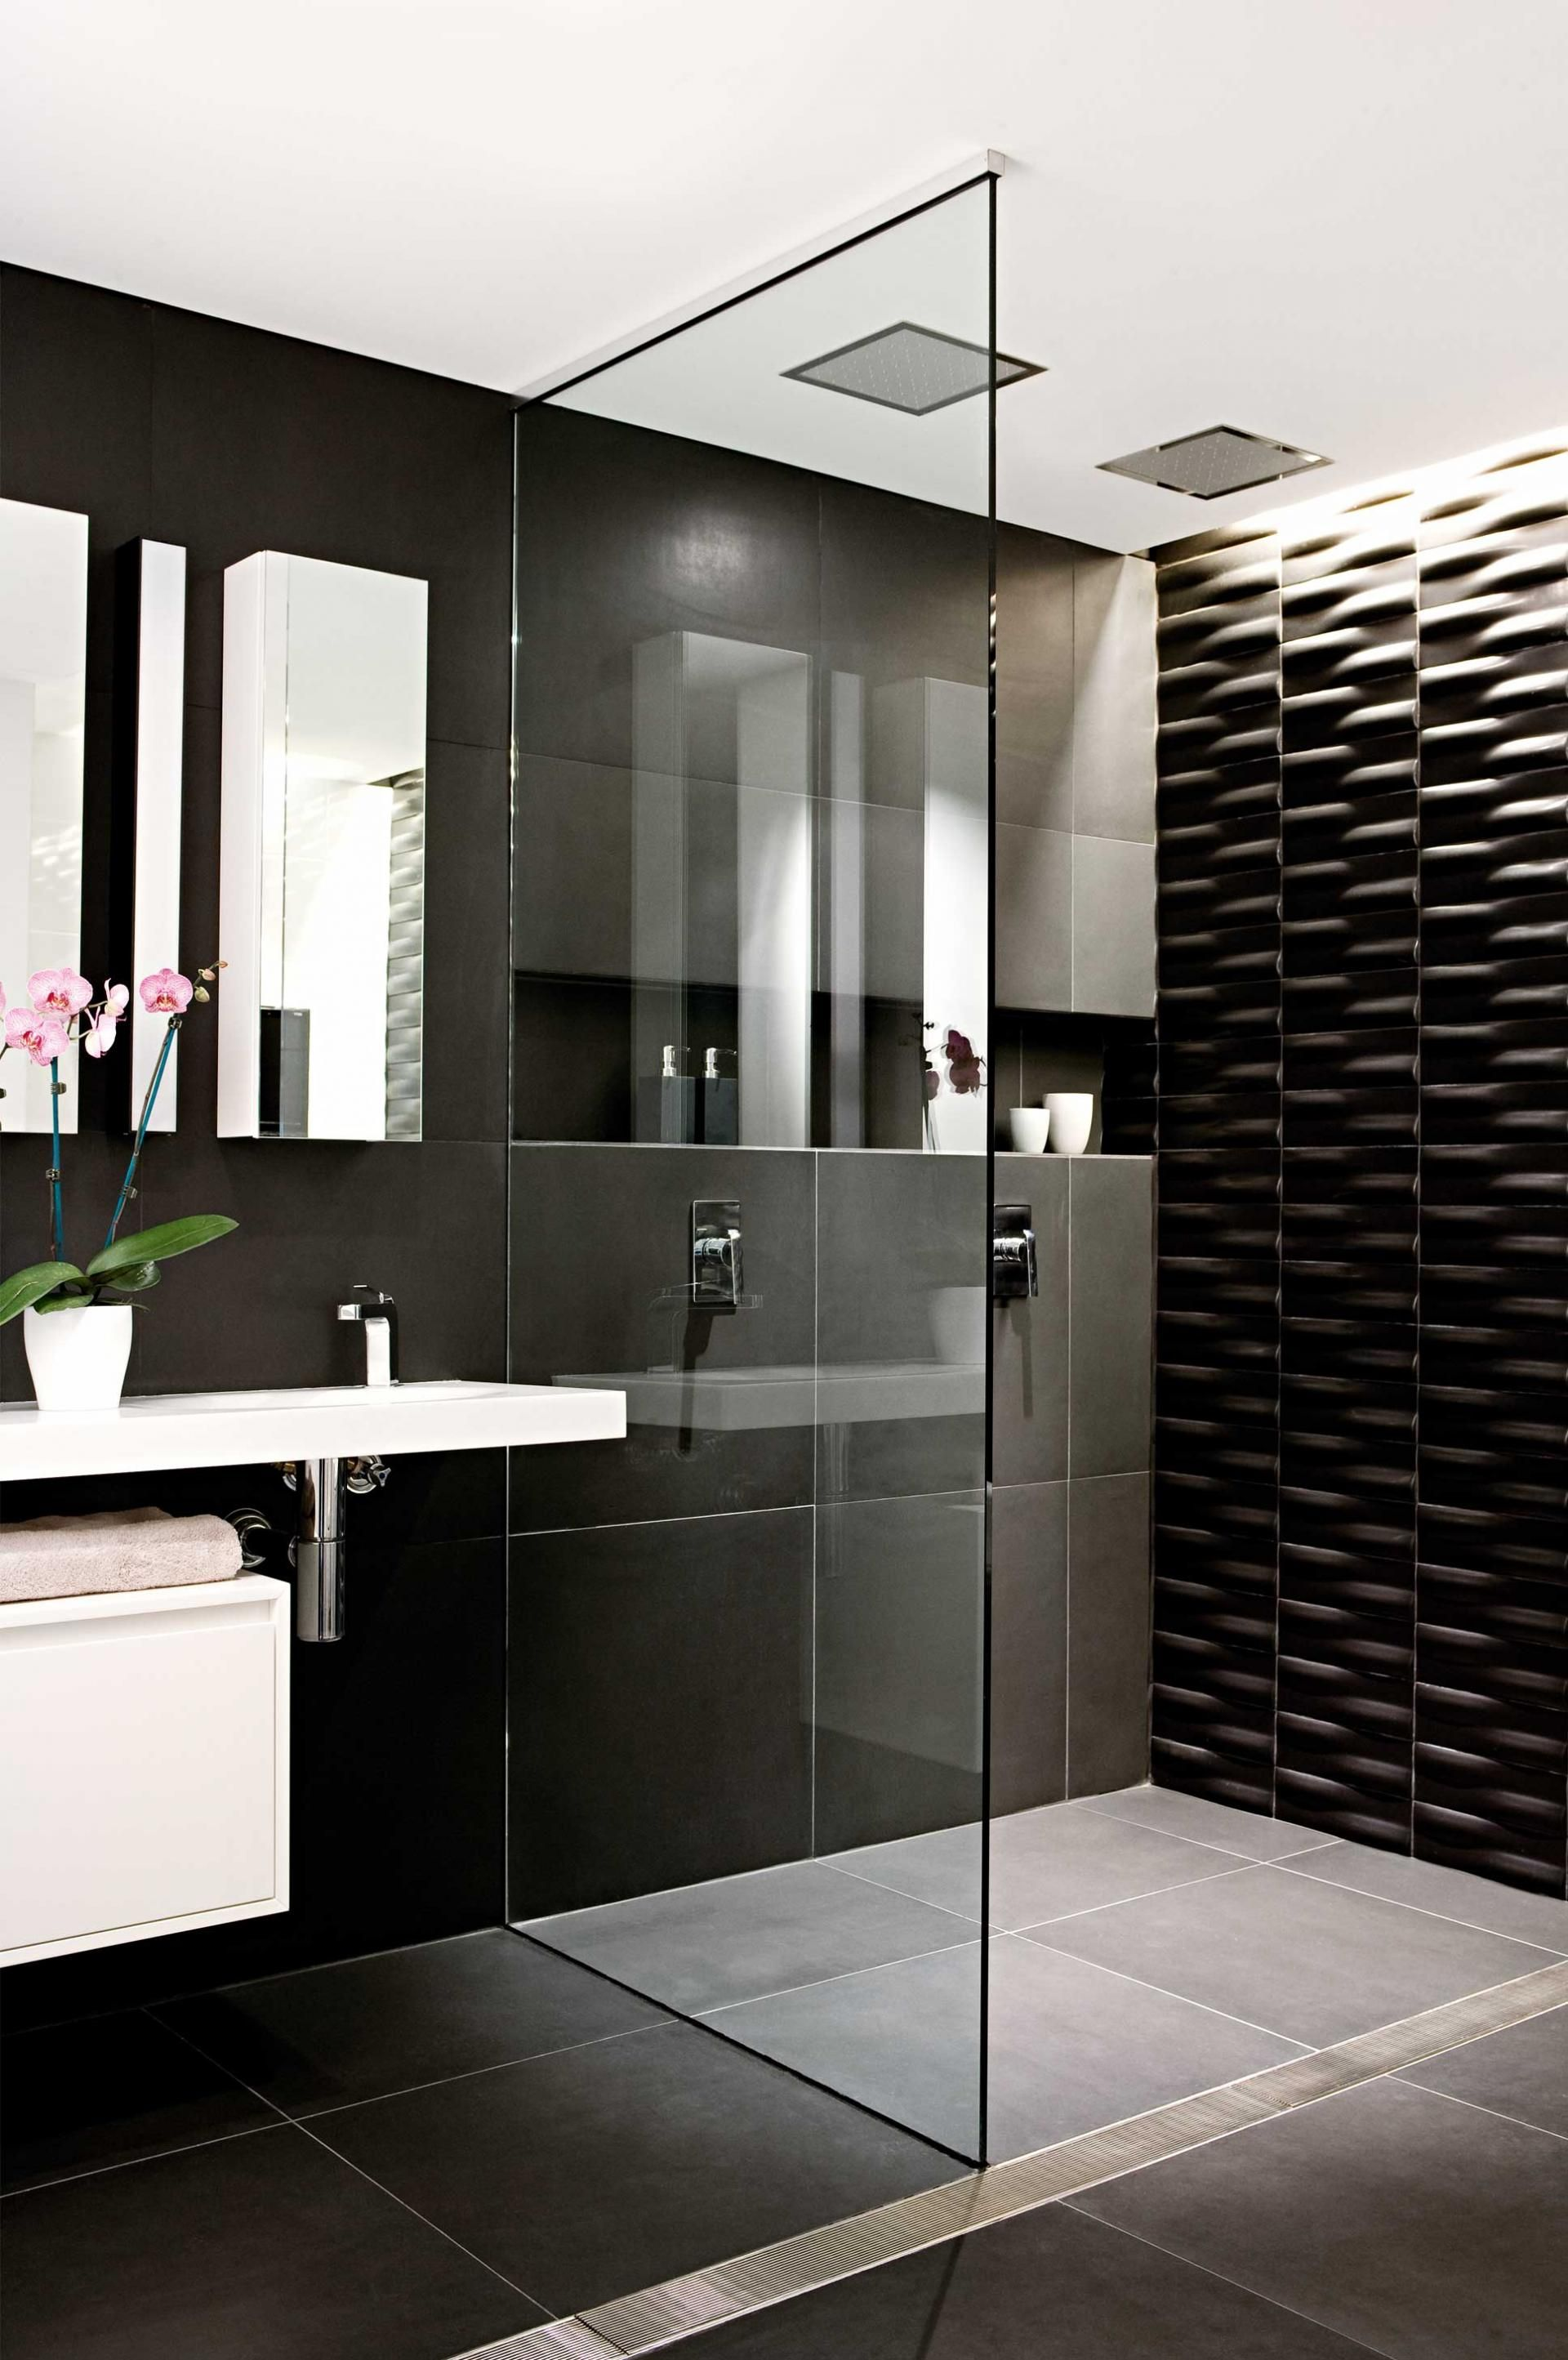 Captivating 10 Black And White Bathrooms. Styling By Vanessa Colyer Tay. Photography By  Sam McAdam Cooper.